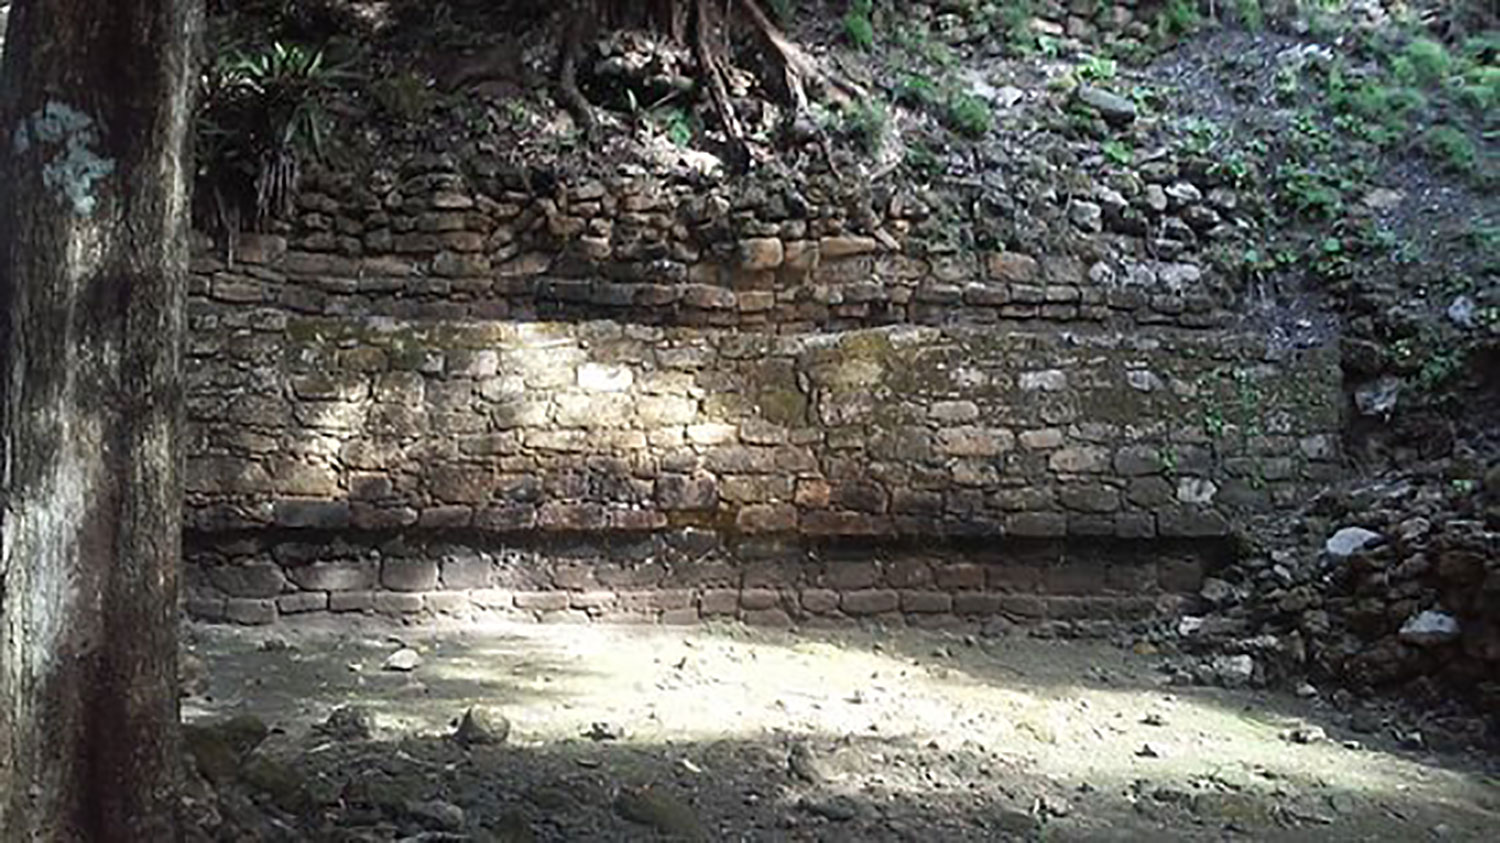 West wall of the Great Basement shows its elevation.